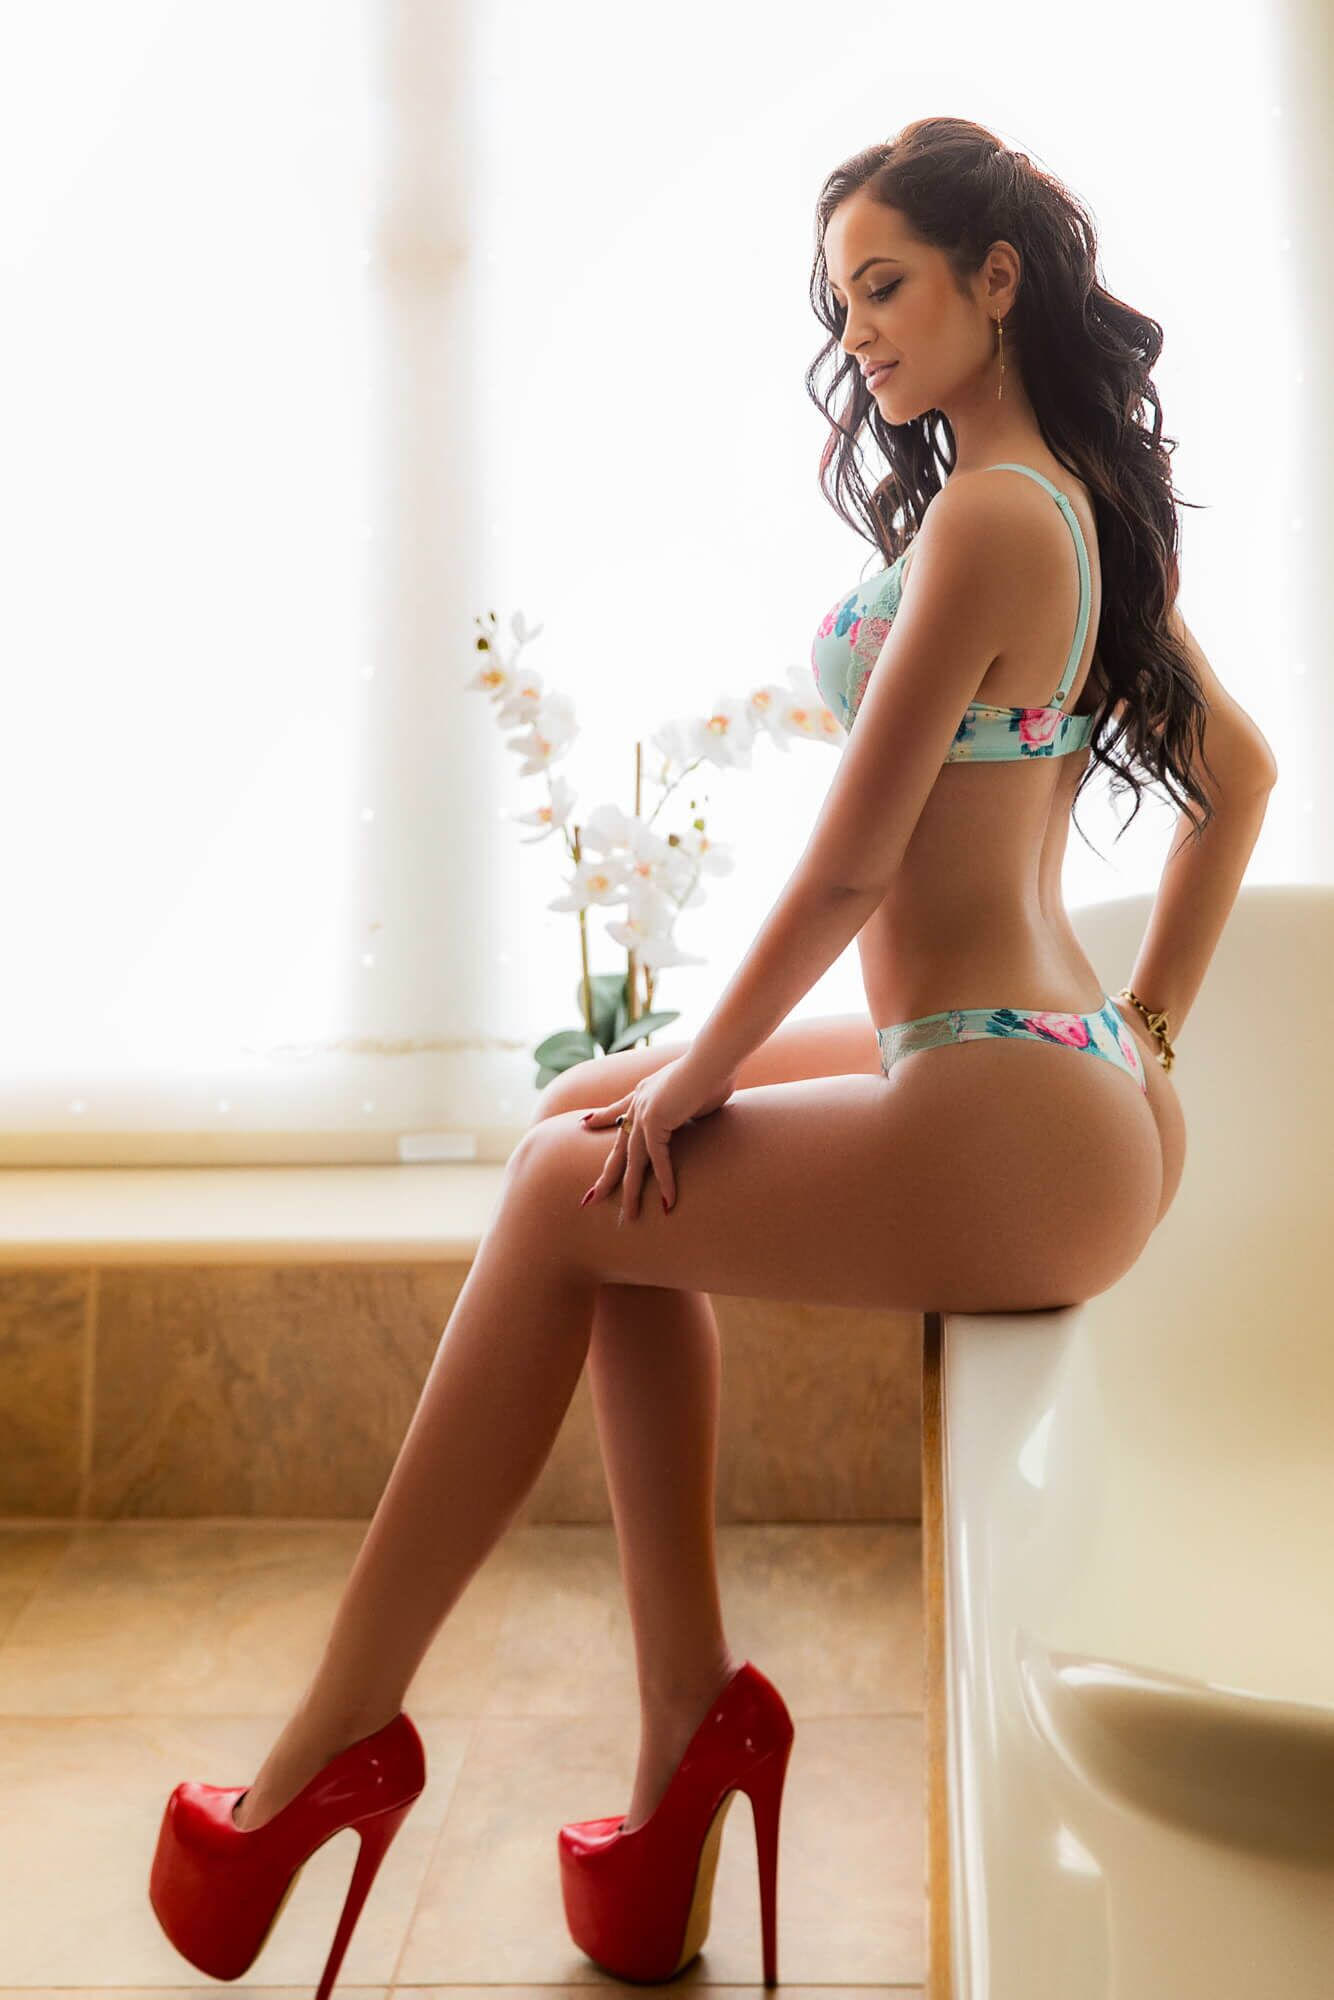 Los Angeles escorts - CEO companions travelling companions adult.